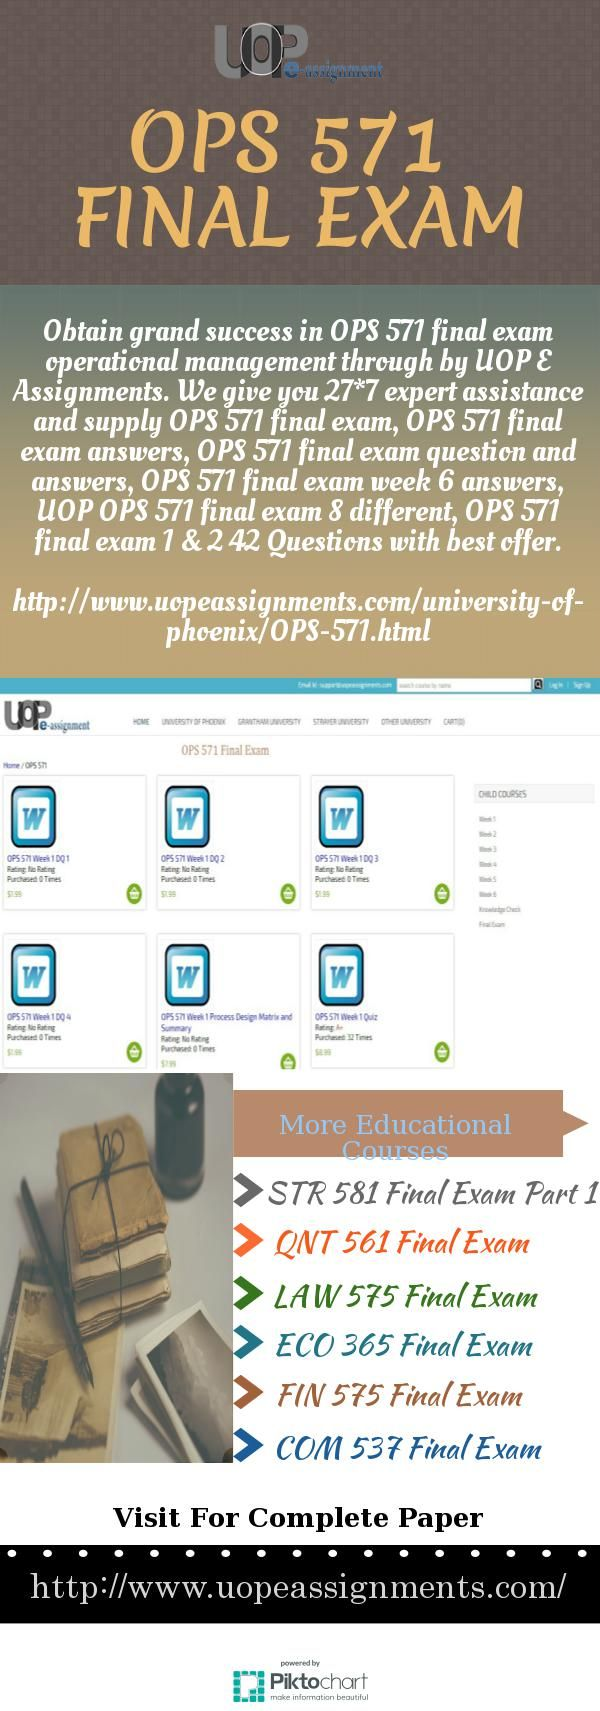 UOP E Assignments are the only educational tutoring service provider in the USA that guarantees start-to-finish final exam support of the university of phoenix students. We provide OPS 571 final exam operational management, OPS 571 final exam answers, OPS 571 final exam question and answers, OPS 571 final exam week 6 answers, UOP OPS 571 final exam 8 different, OPS 571 final exam 1 & 2 42 Questions and 24*7 customized support for free…